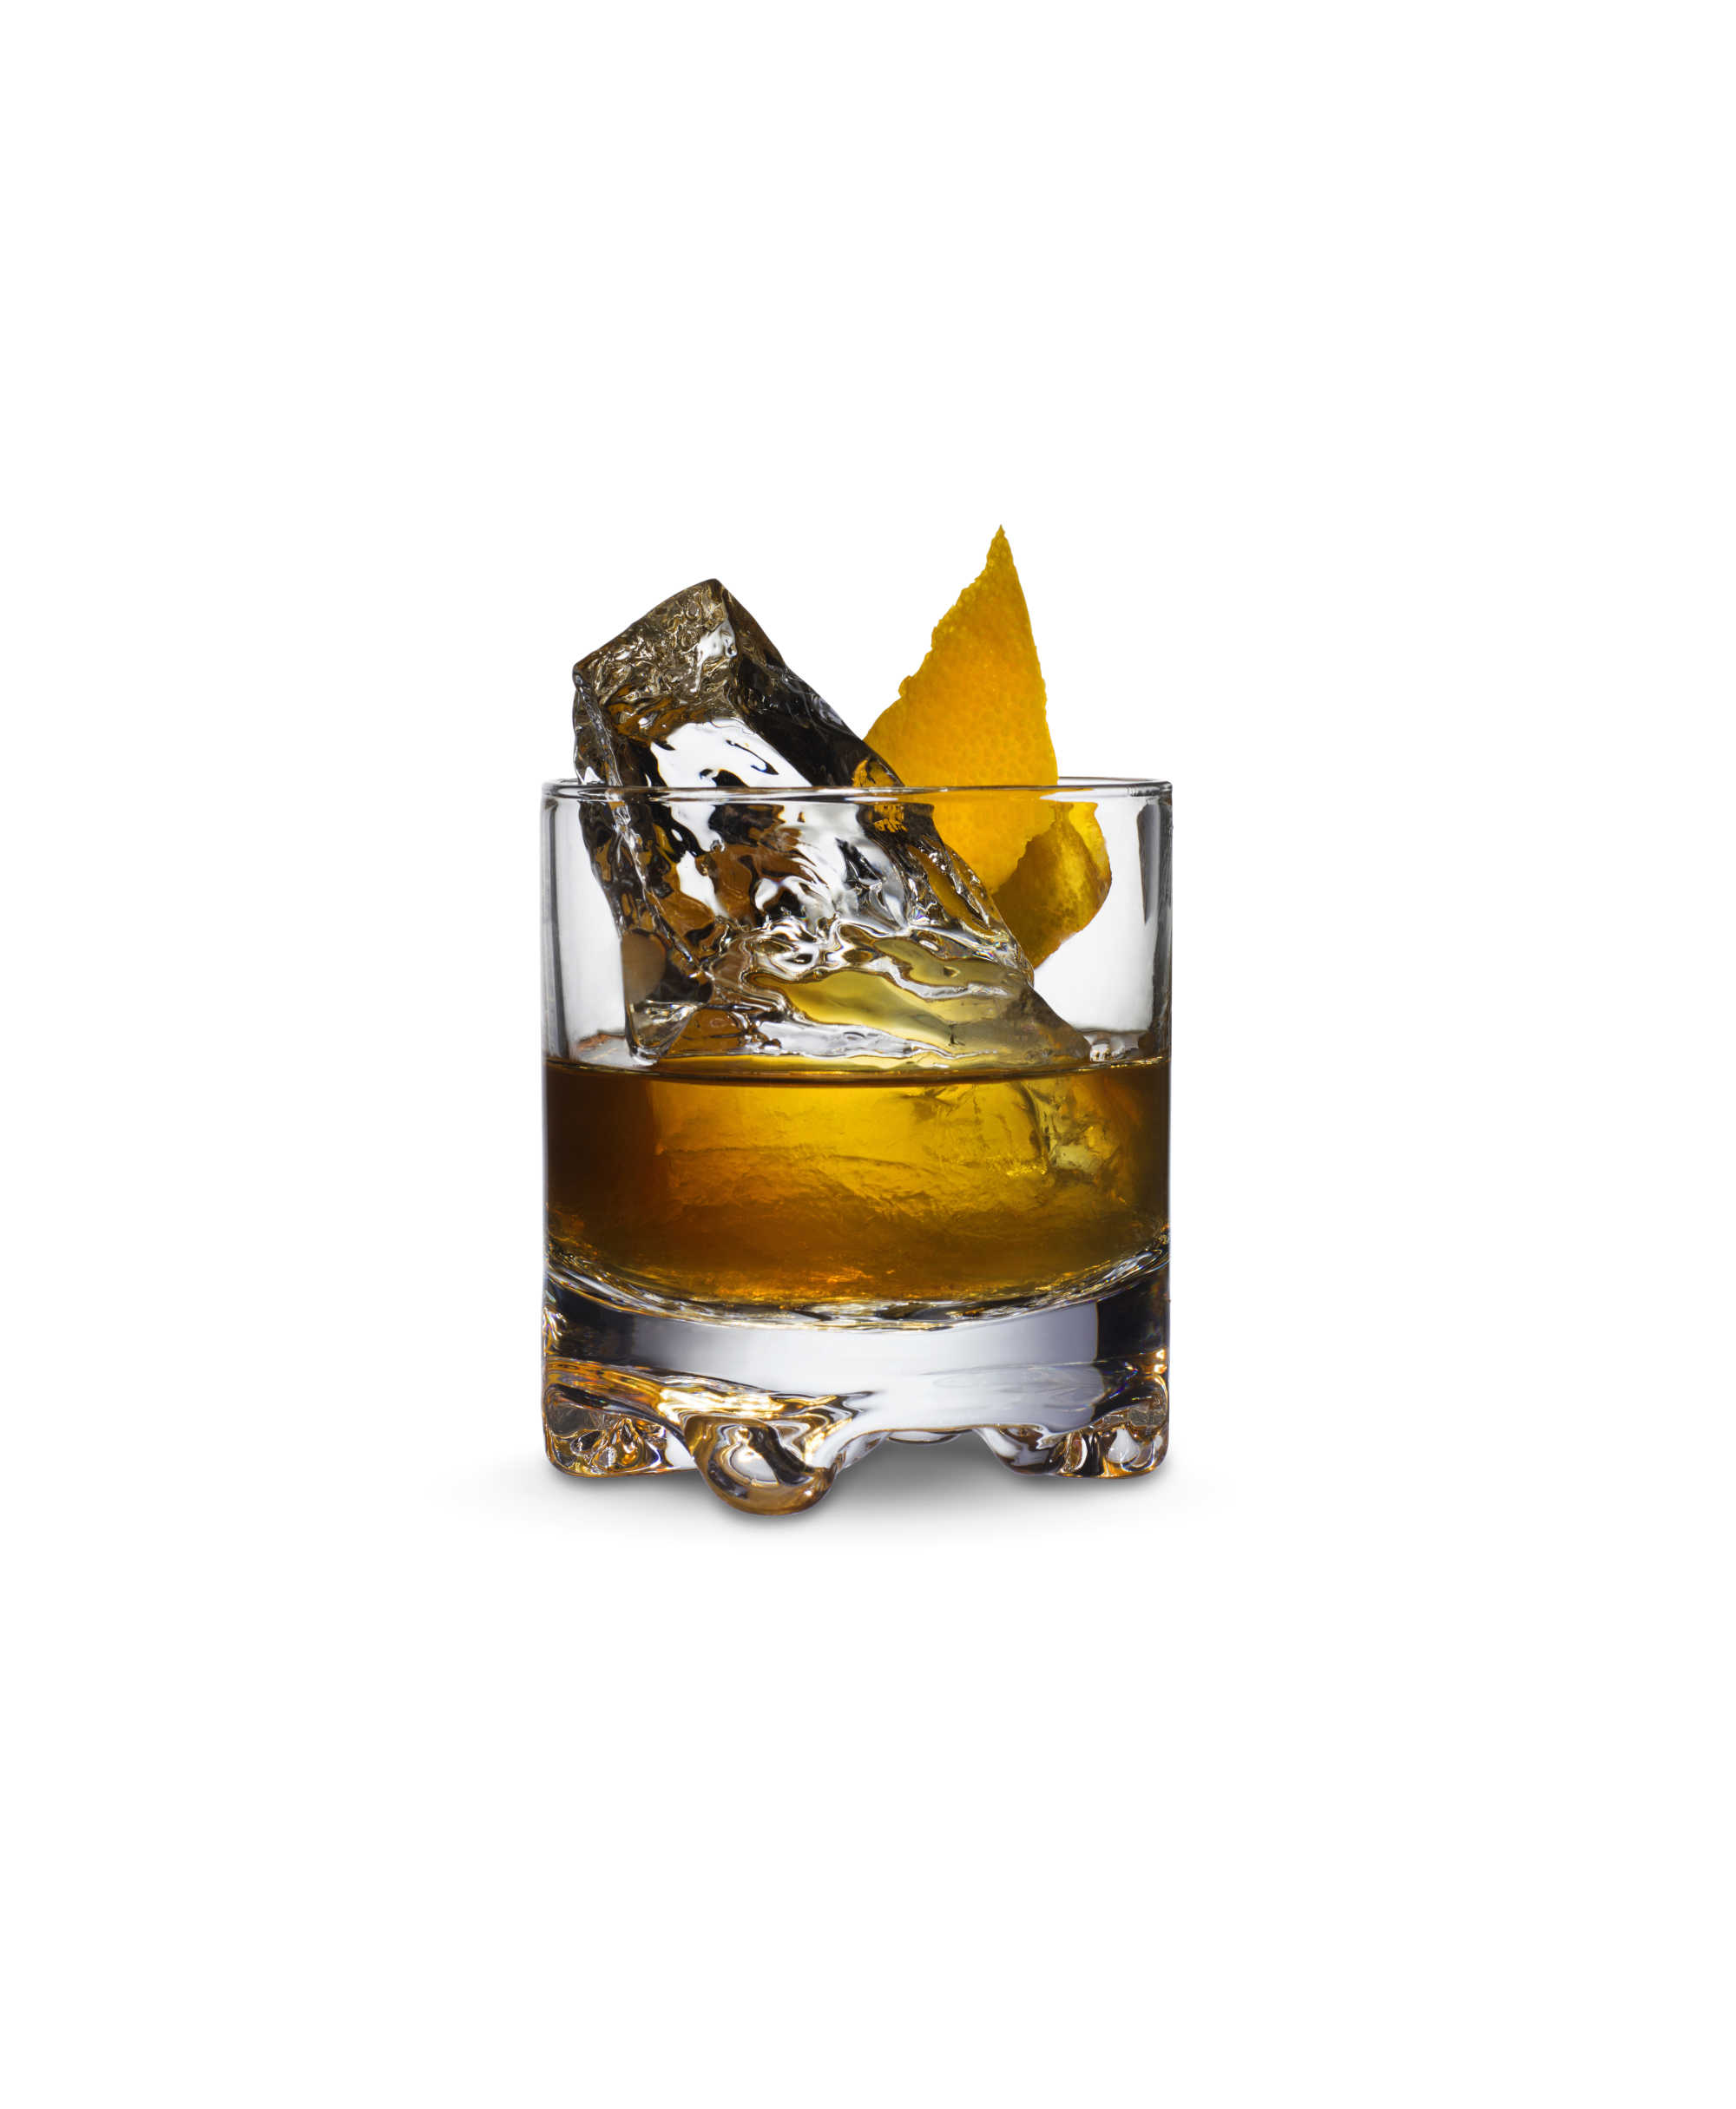 Old Fashioned is a classic whisky cocktail served on ice. Old Fashioned made with using Kyrö Malt is garnished with orange peel.